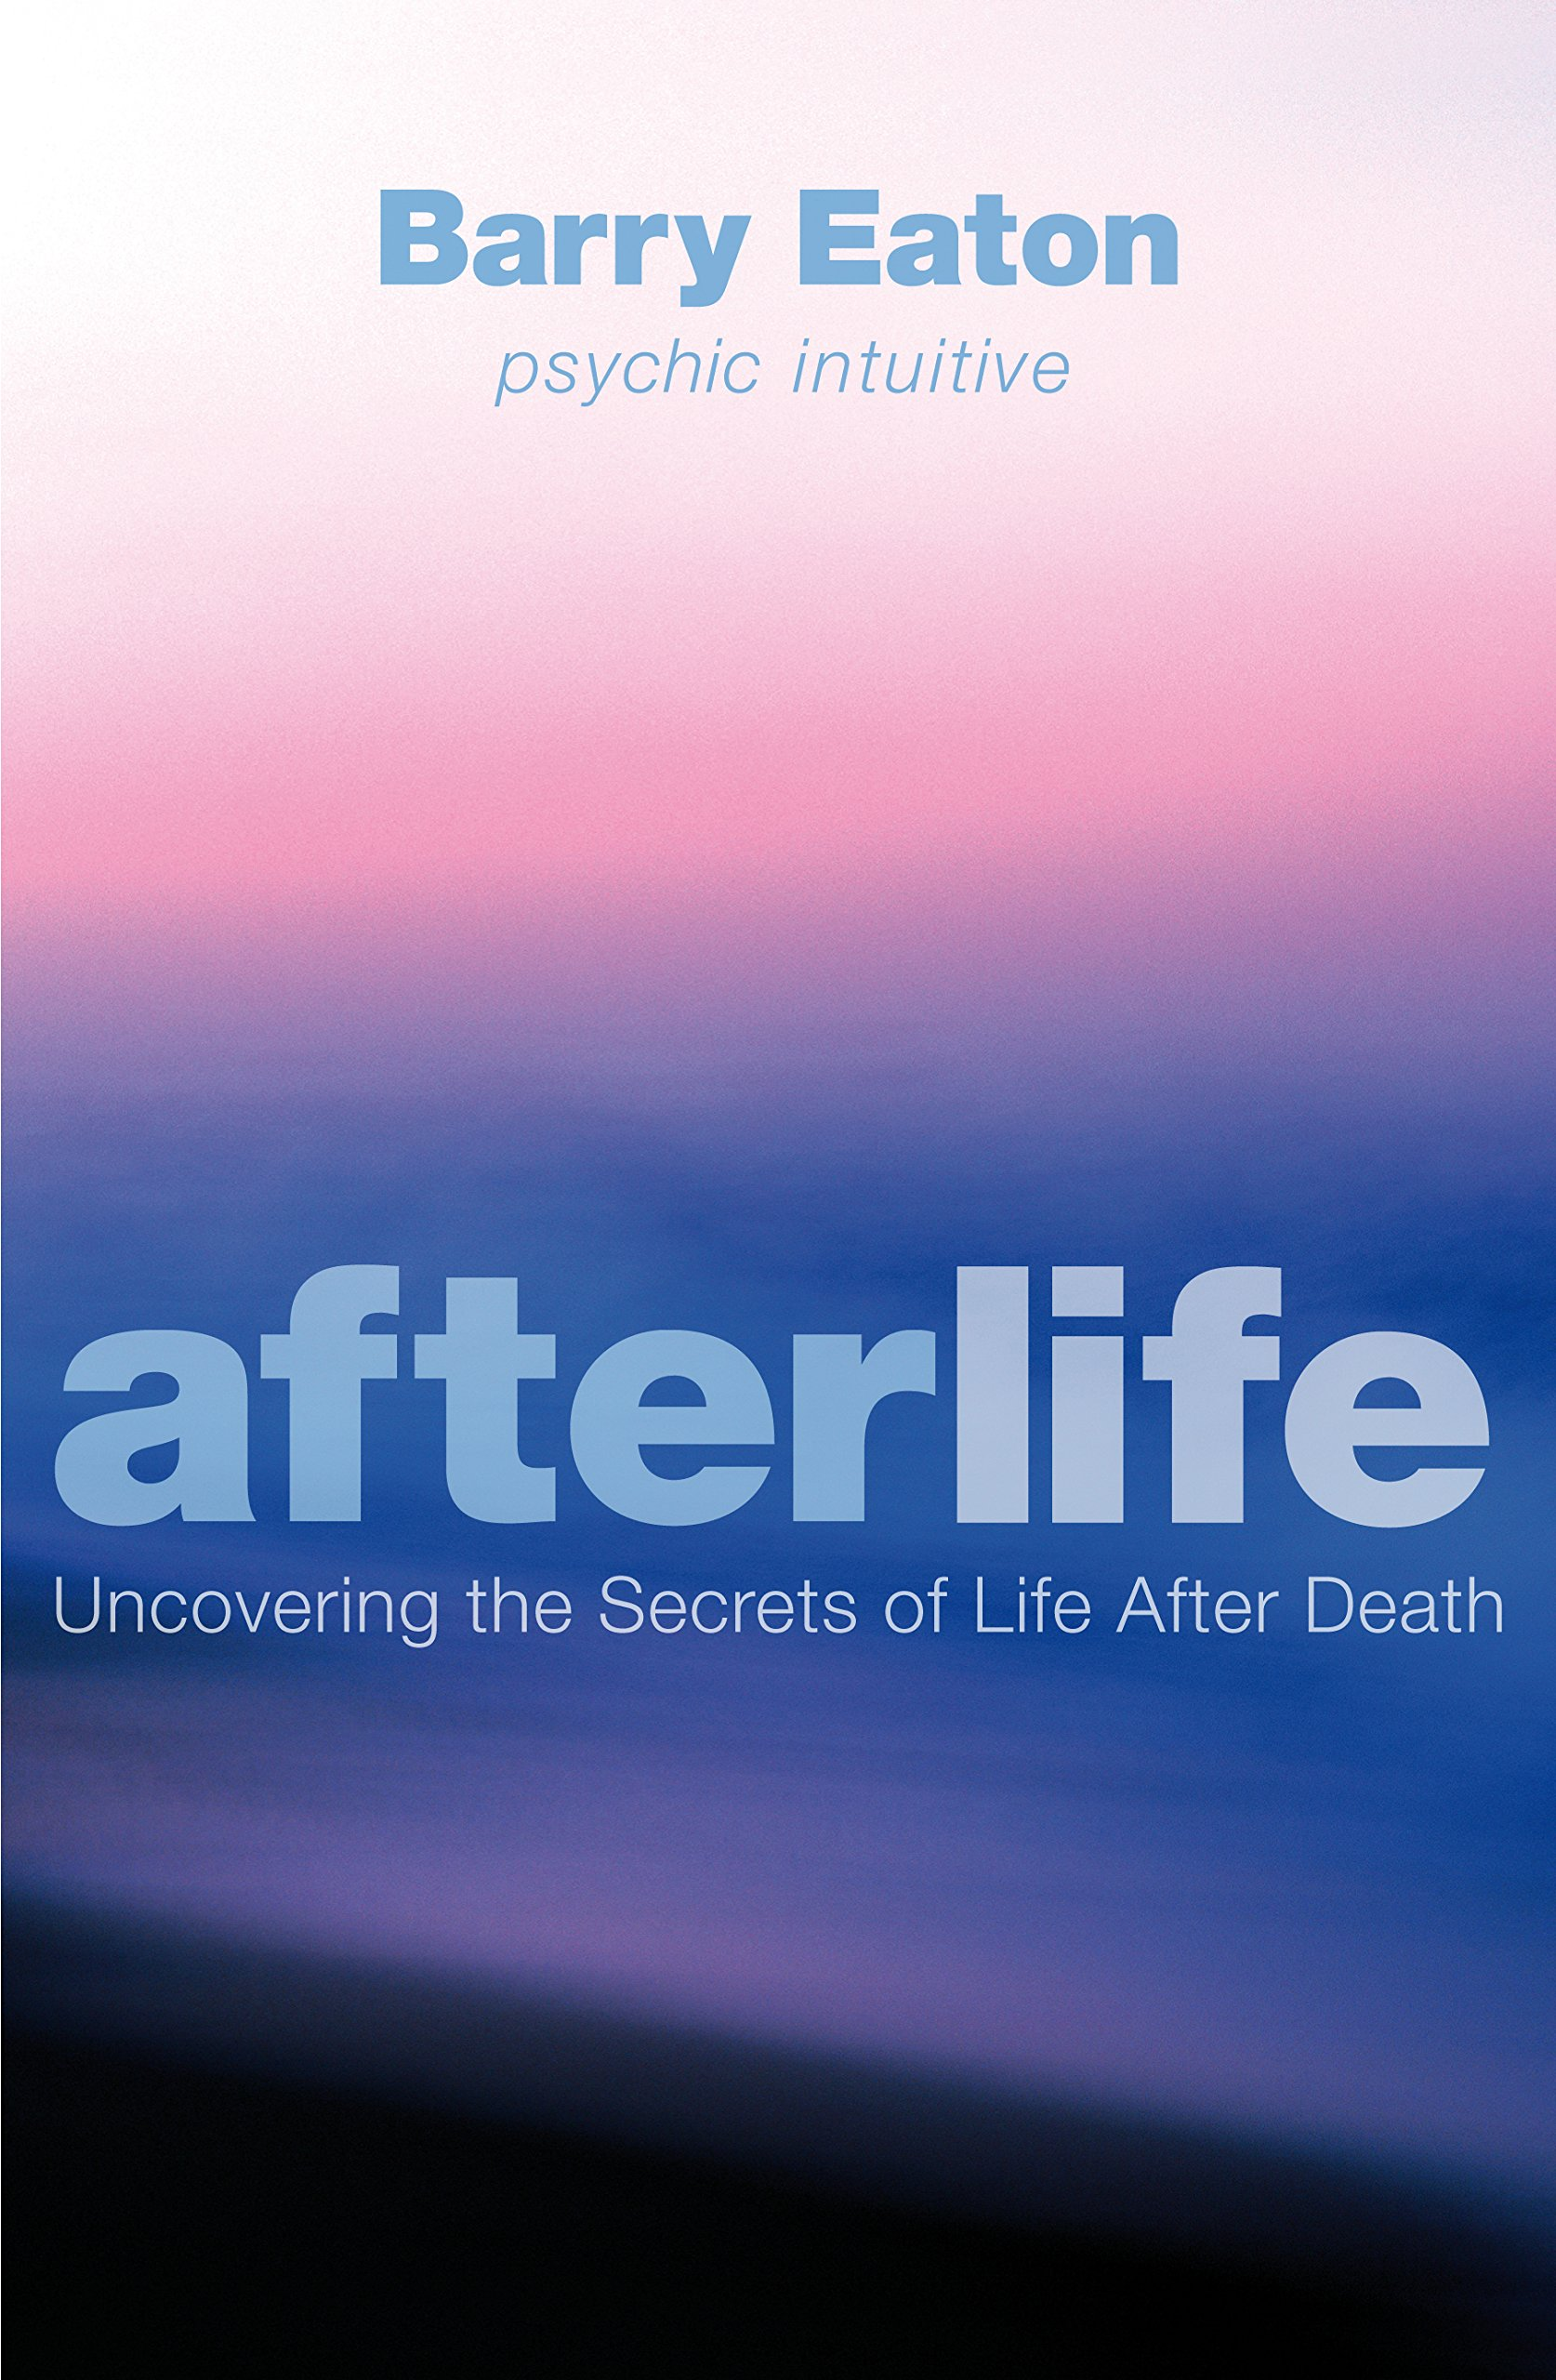 Afterlife: Uncovering the Secrets of Life After Death pdf